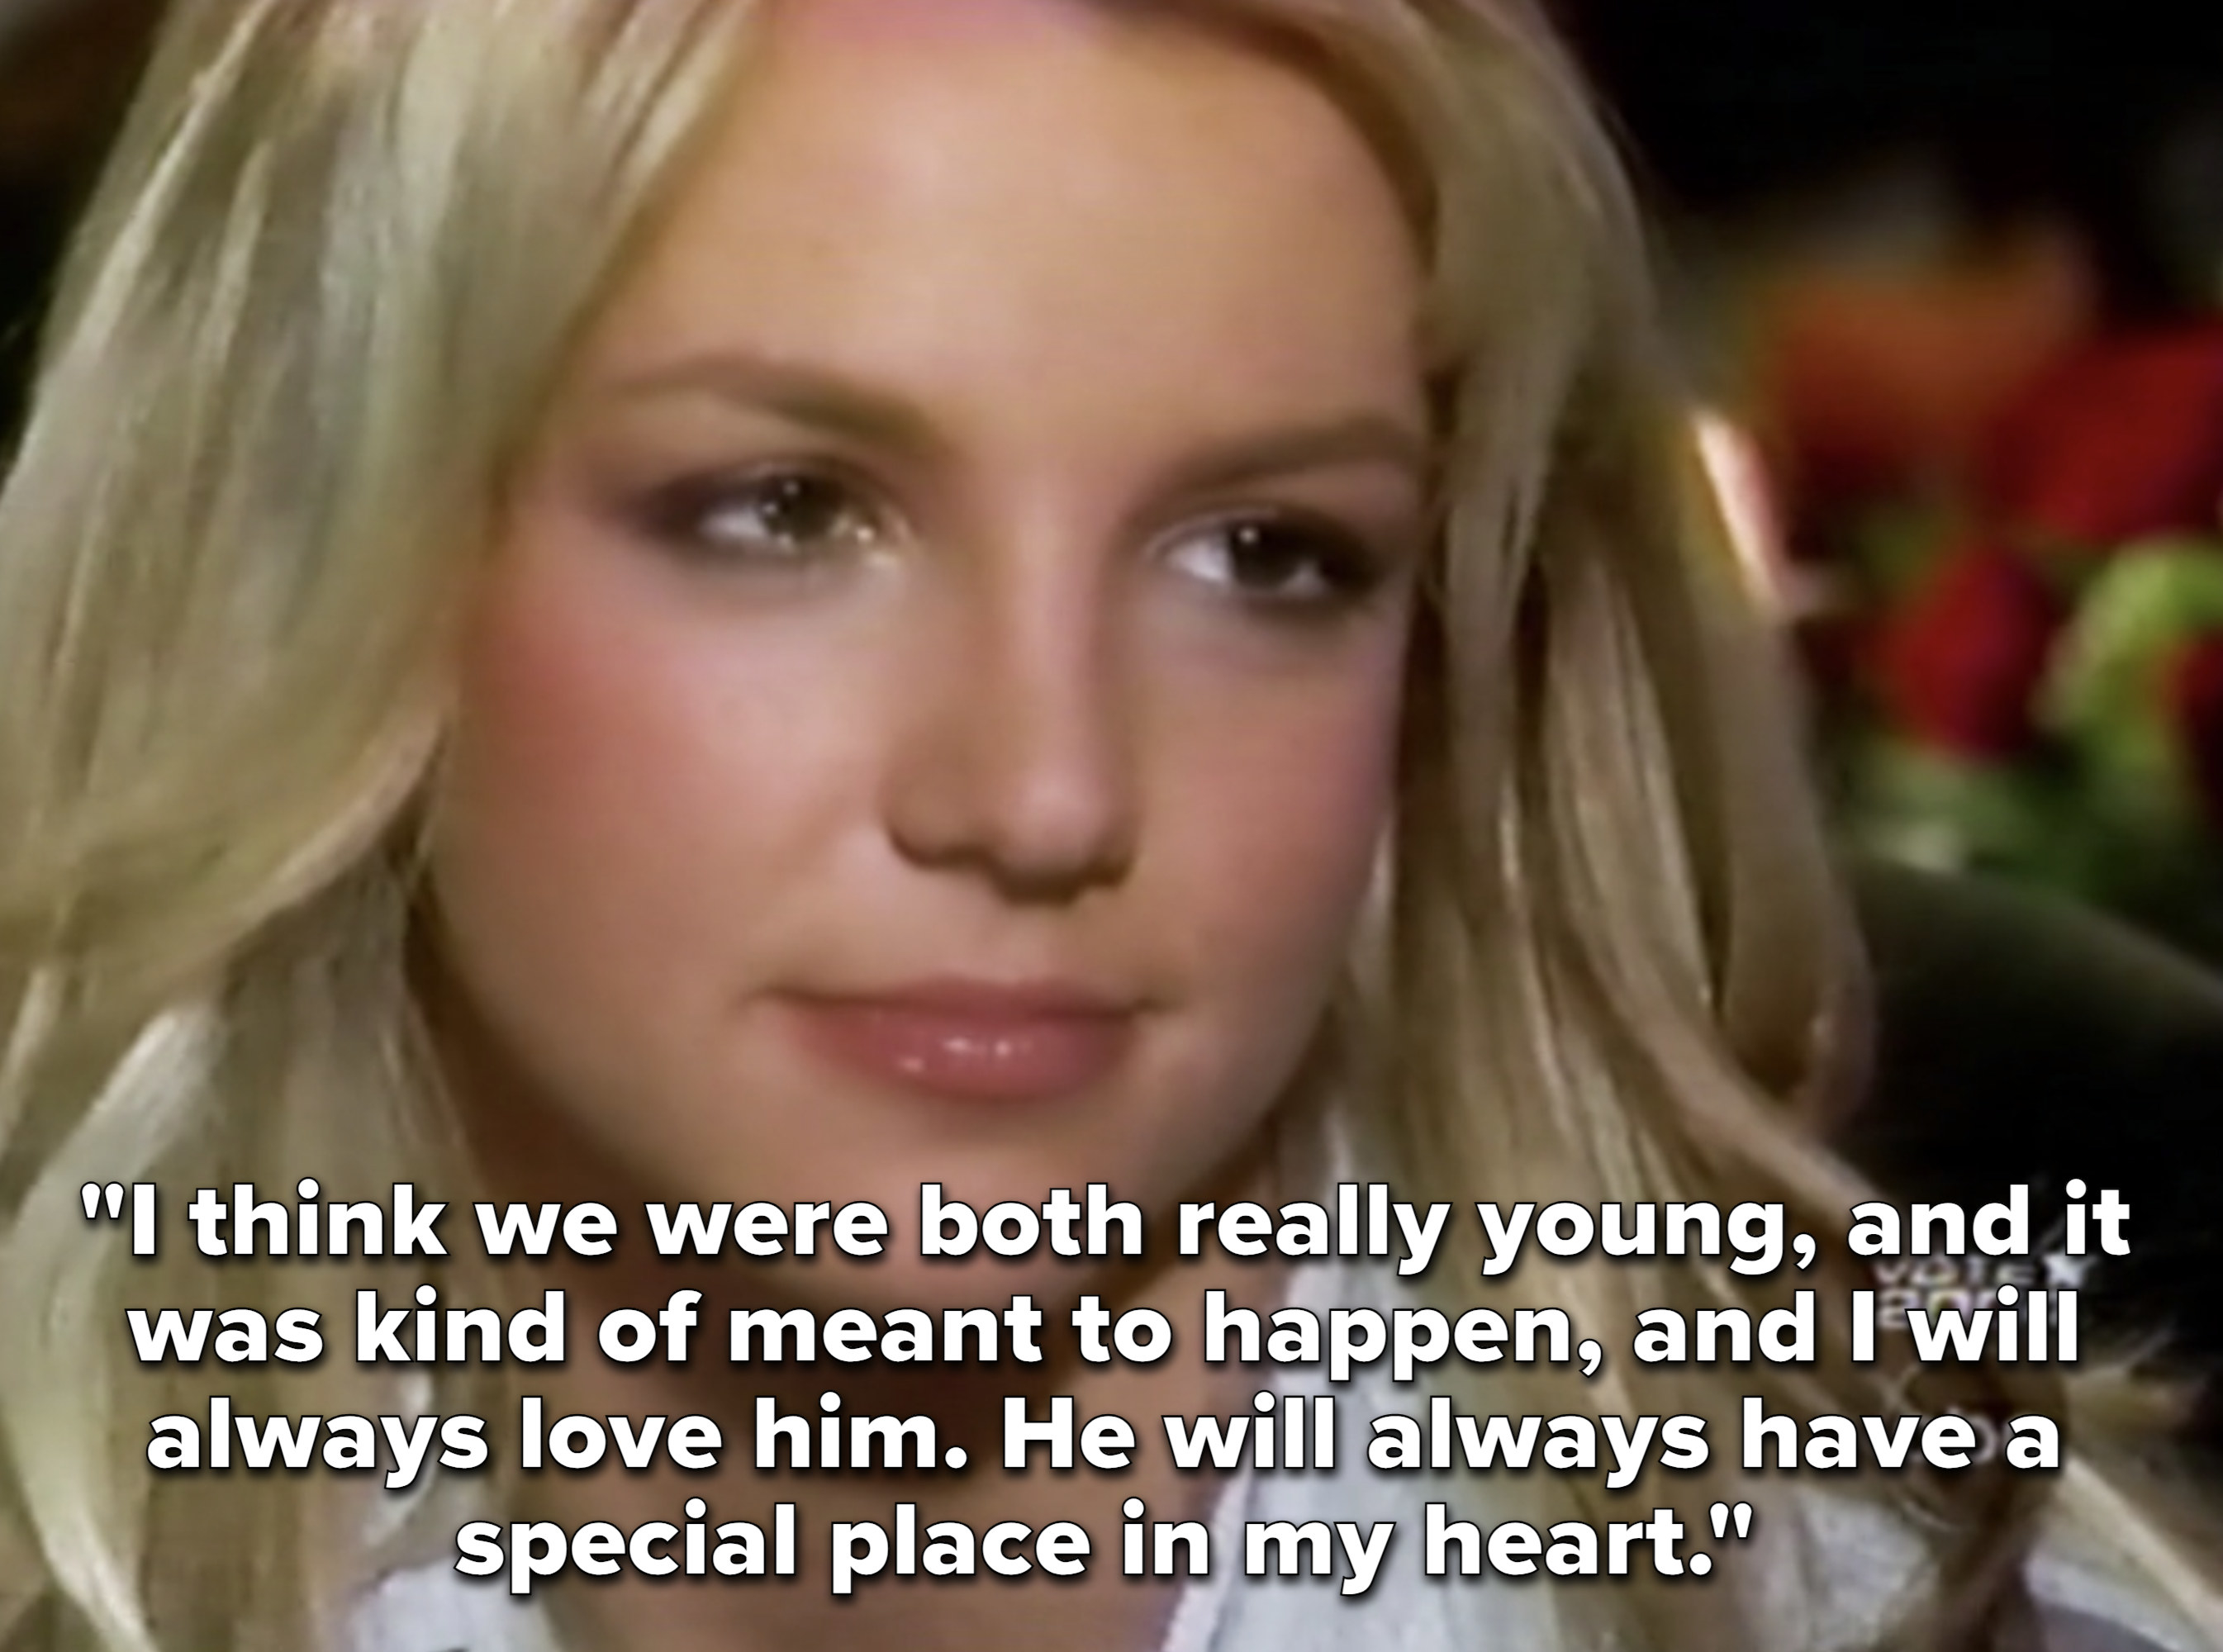 Britney explaining that they were both very young, and that she'll always love justin and he'll always have a special place in her heart